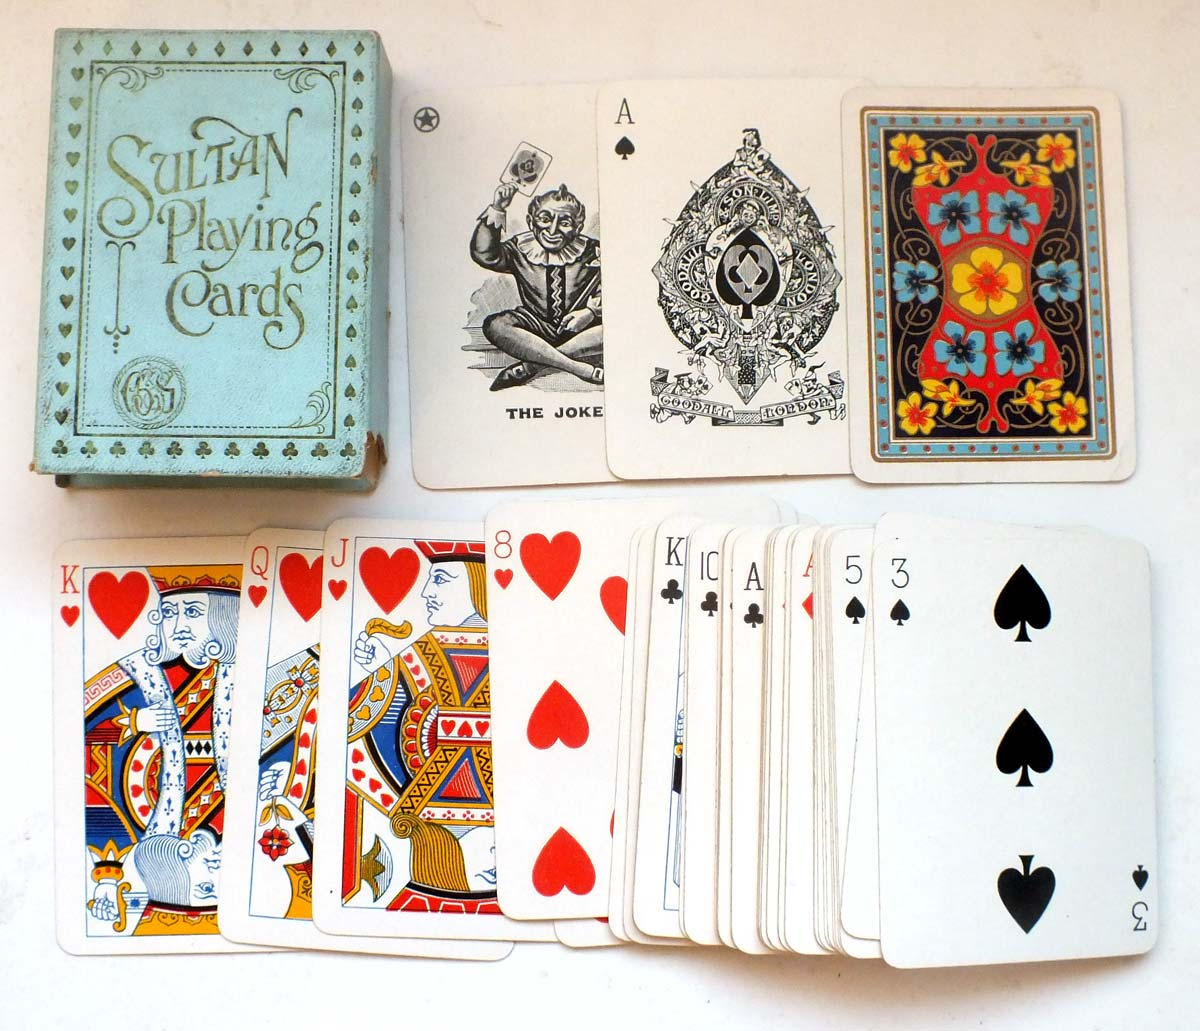 dating goodall playing cards 2 decks of goodall bezique cards dating to the 1860s,  the playing cards are in excellent condition,  the ruby lane group.